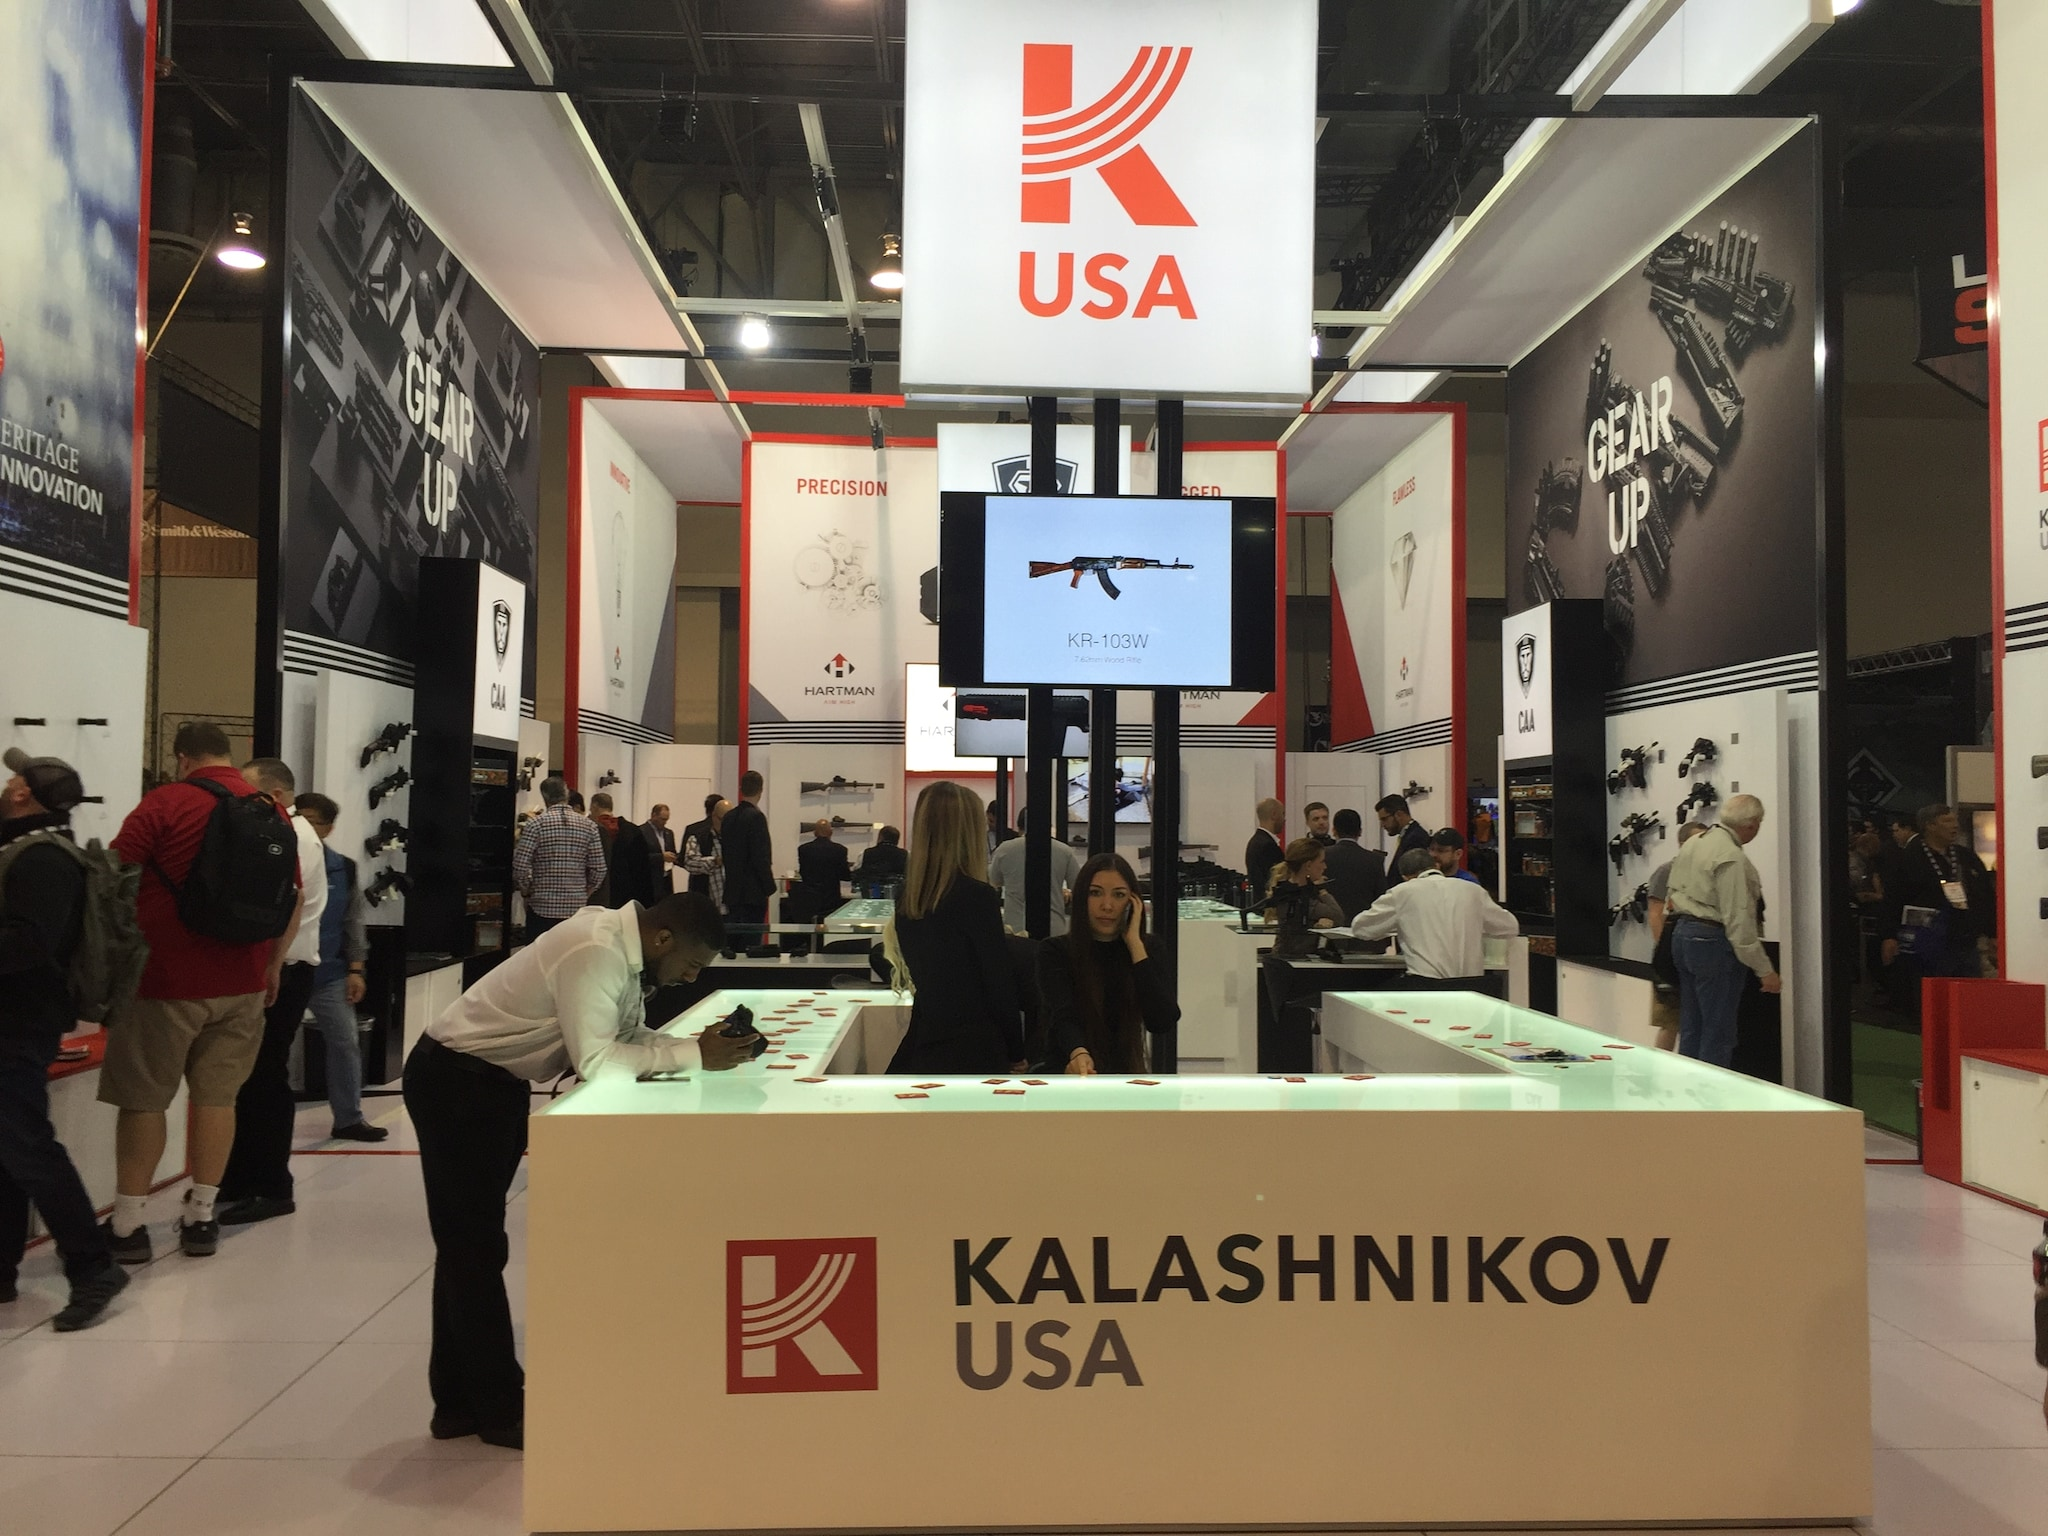 Kalashnikov USA's booth, elegant like a ballistic version of the Cartier store down the street.